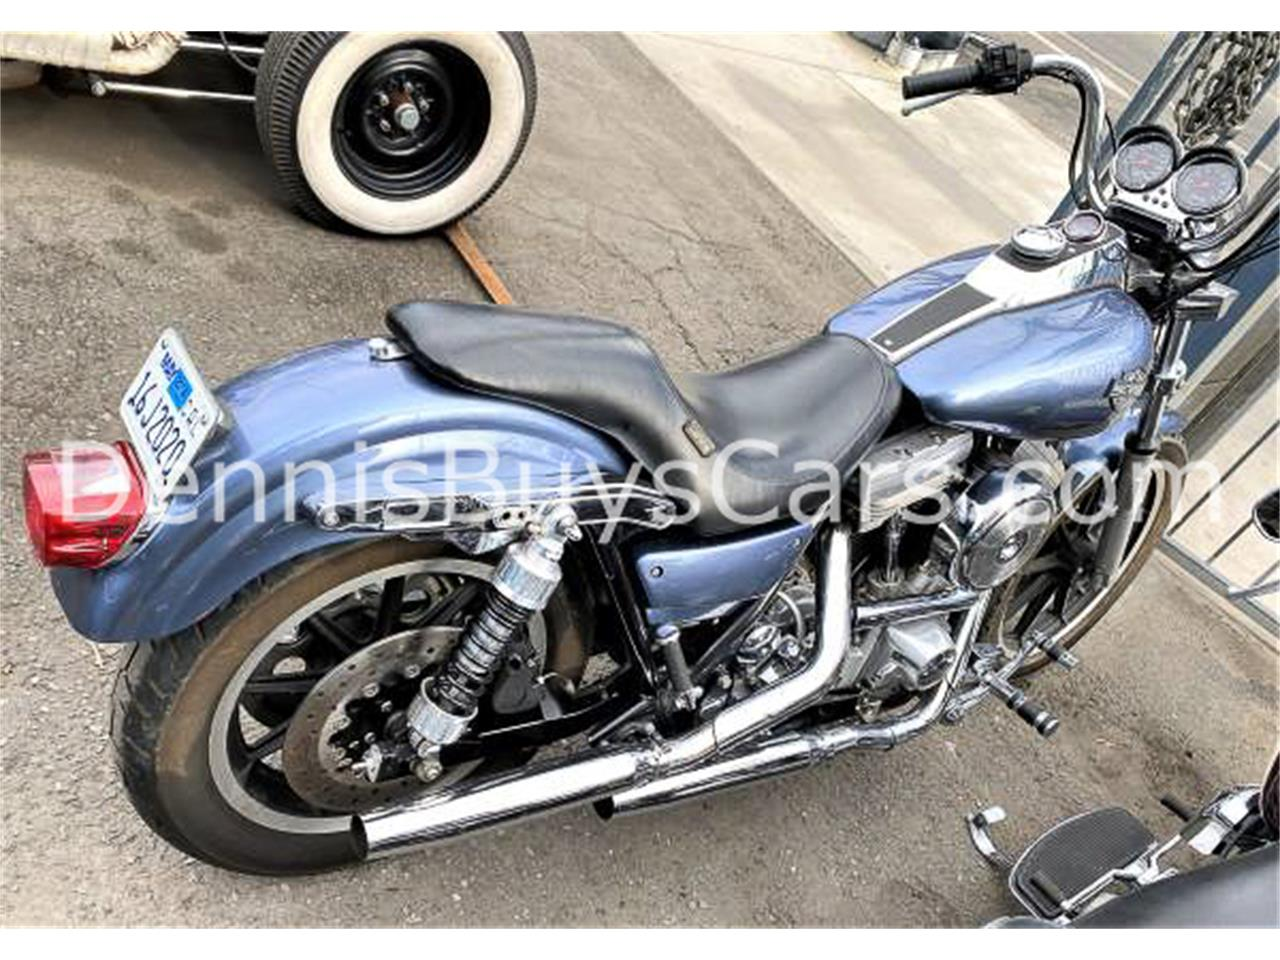 1986 Harley-Davidson Motorcycle (CC-1419016) for sale in LOS ANGELES, California